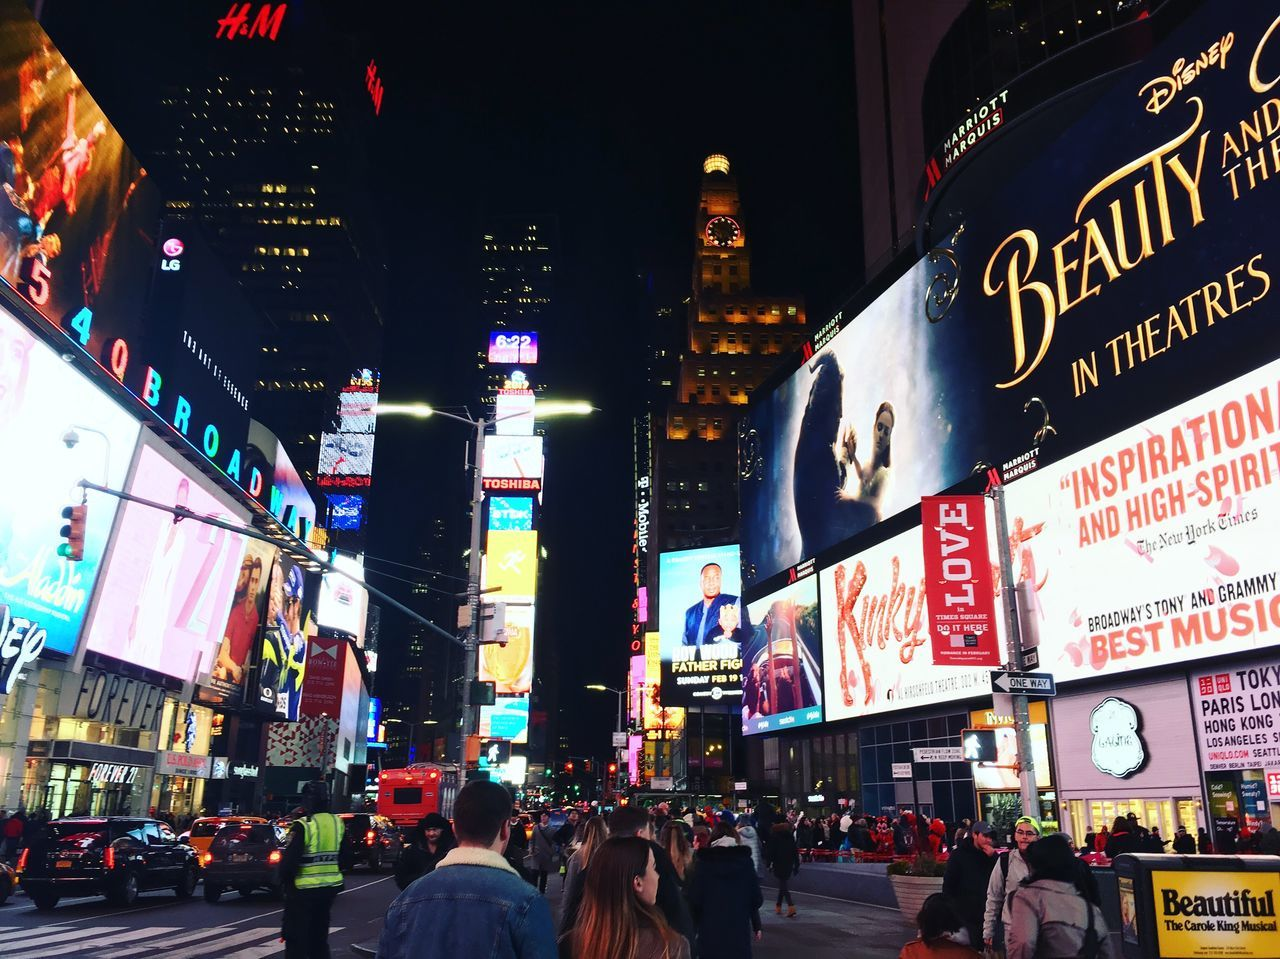 New York City People New York Times Square NYC TimesSquare Skyscraper High Buildings Busy Street Lights New York ❤